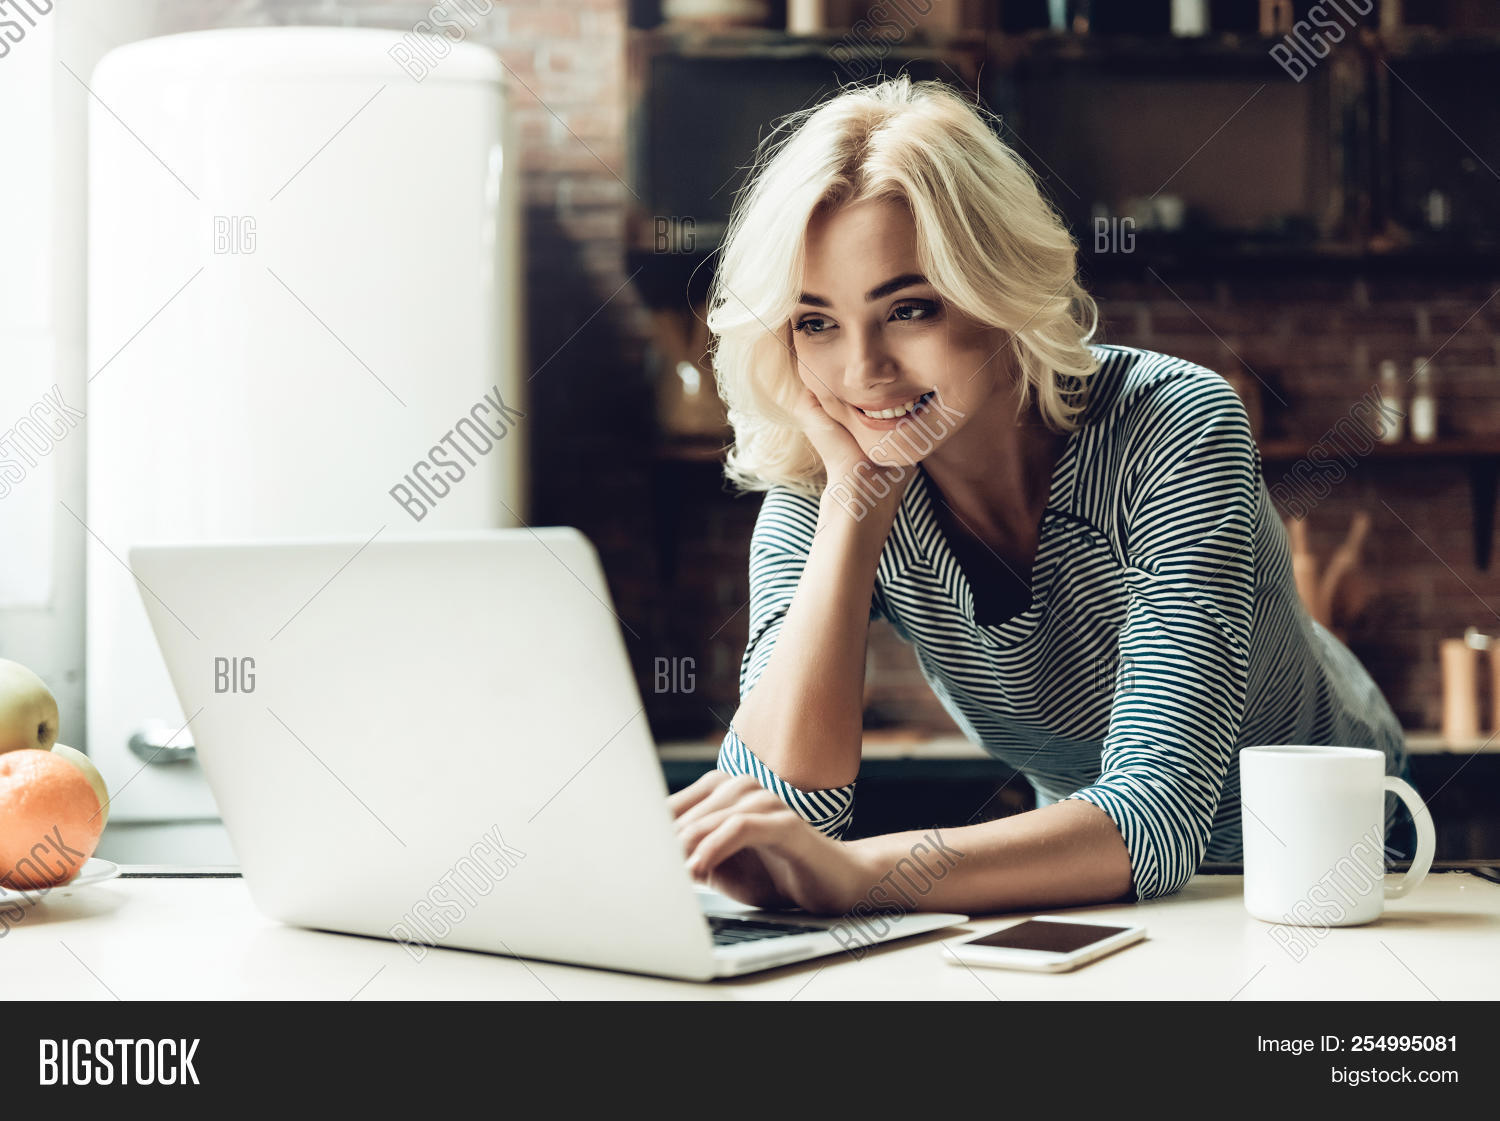 Young Smiling Beautiful Woman Using Laptop At Home. Portrait Of Young Attractive Girl Serfing Intern